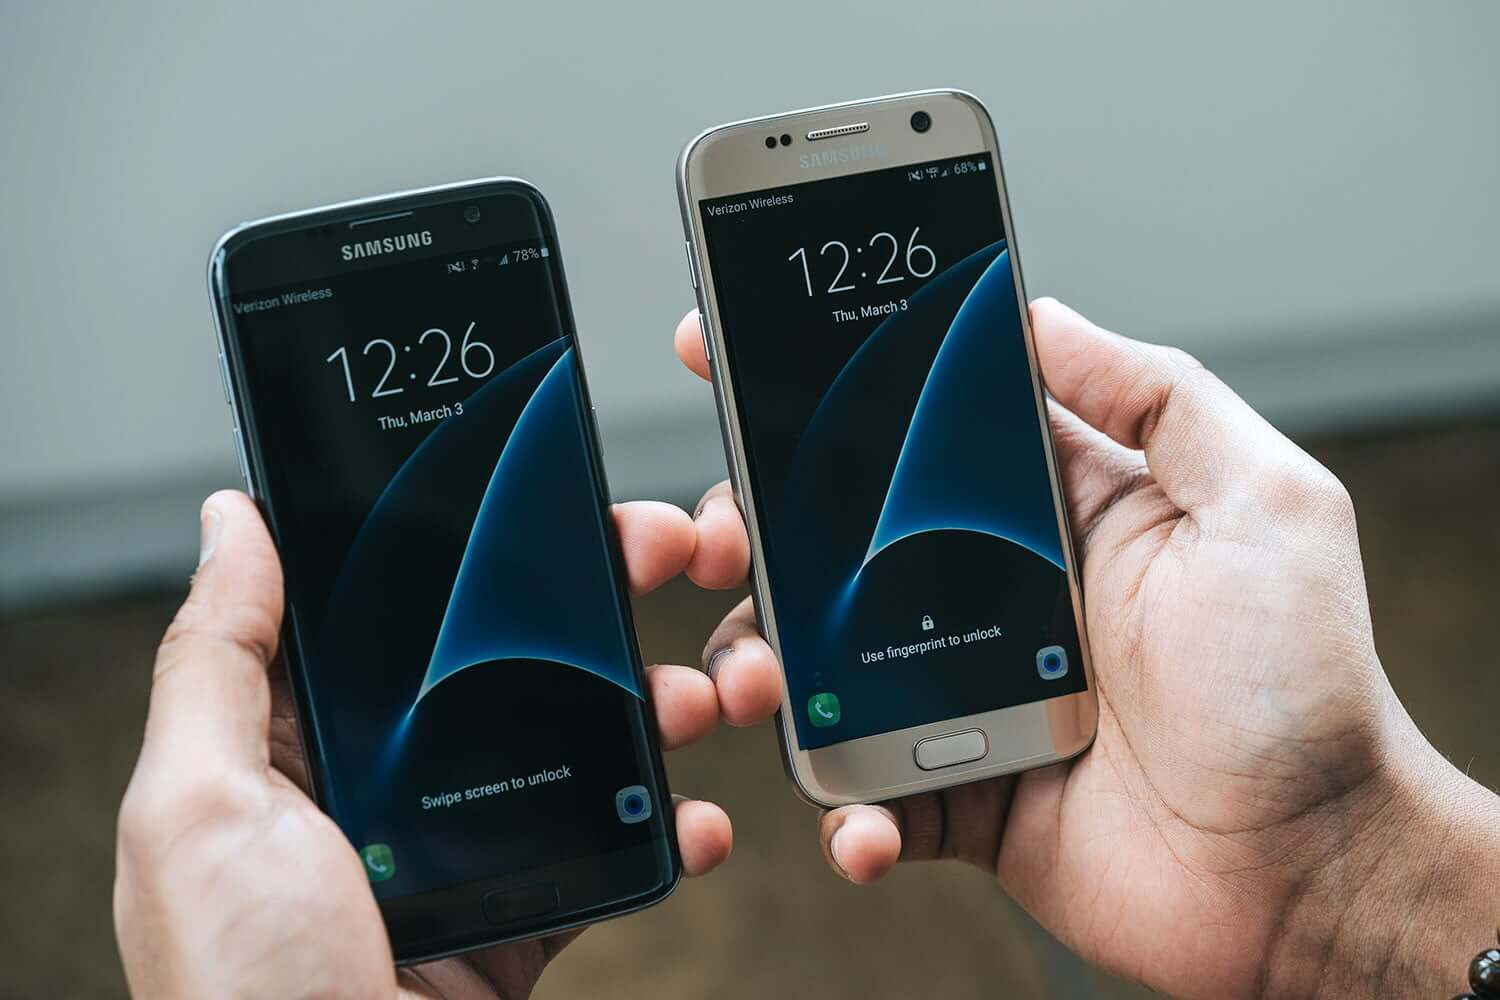 Galaxy s7 vs Galaxy s7 edge